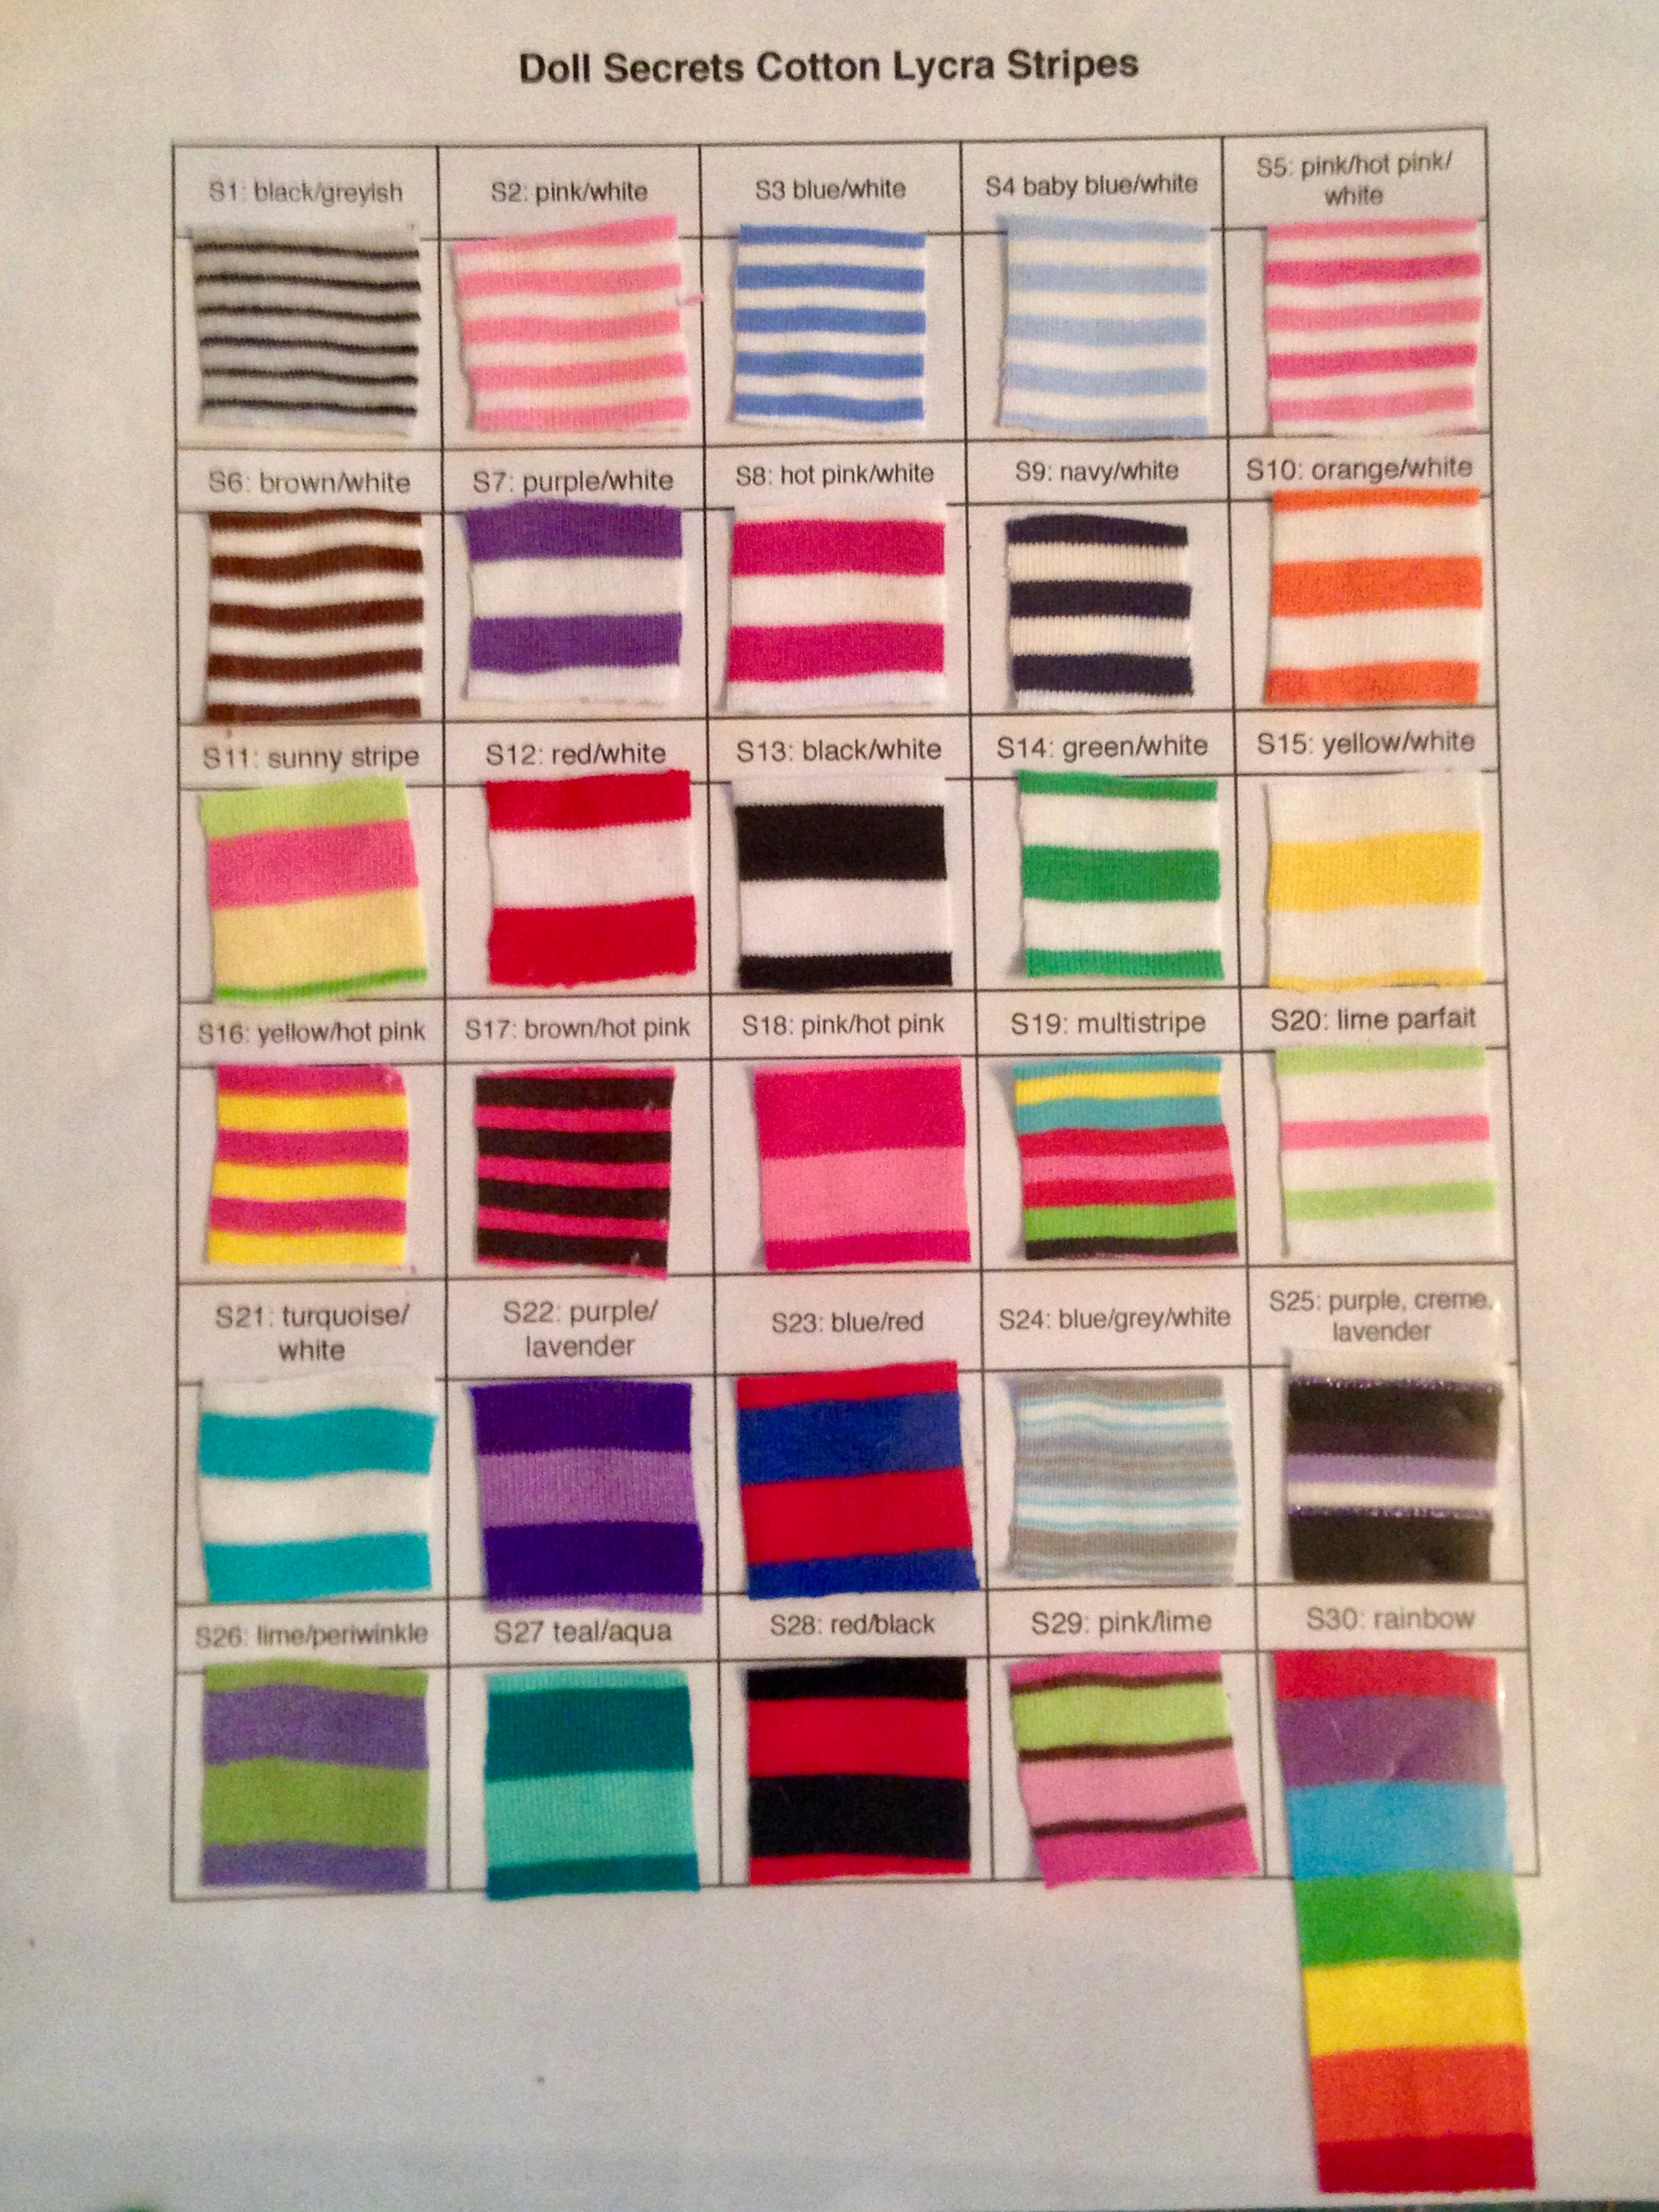 Cotton Lycra Striped Fabrics